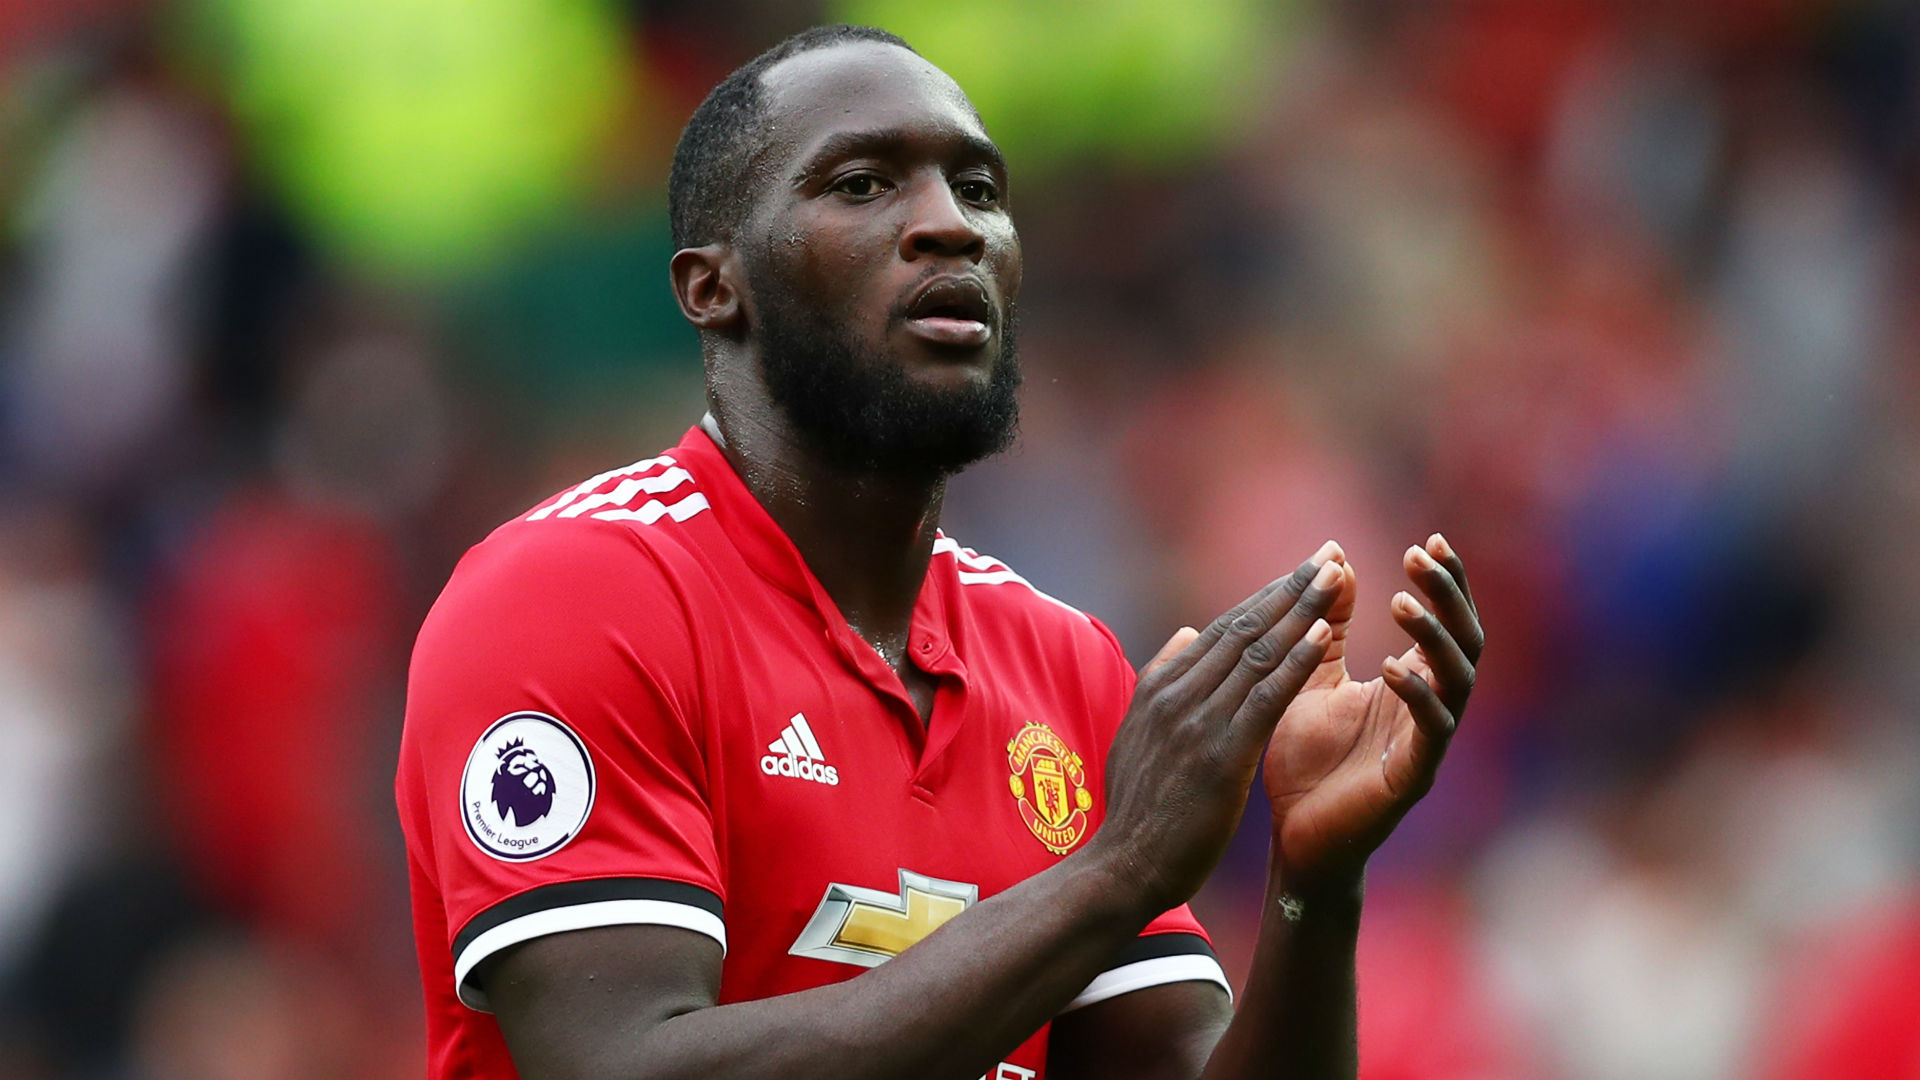 Lukaku scores 2, Man United beats West Ham 4-0 in EPL